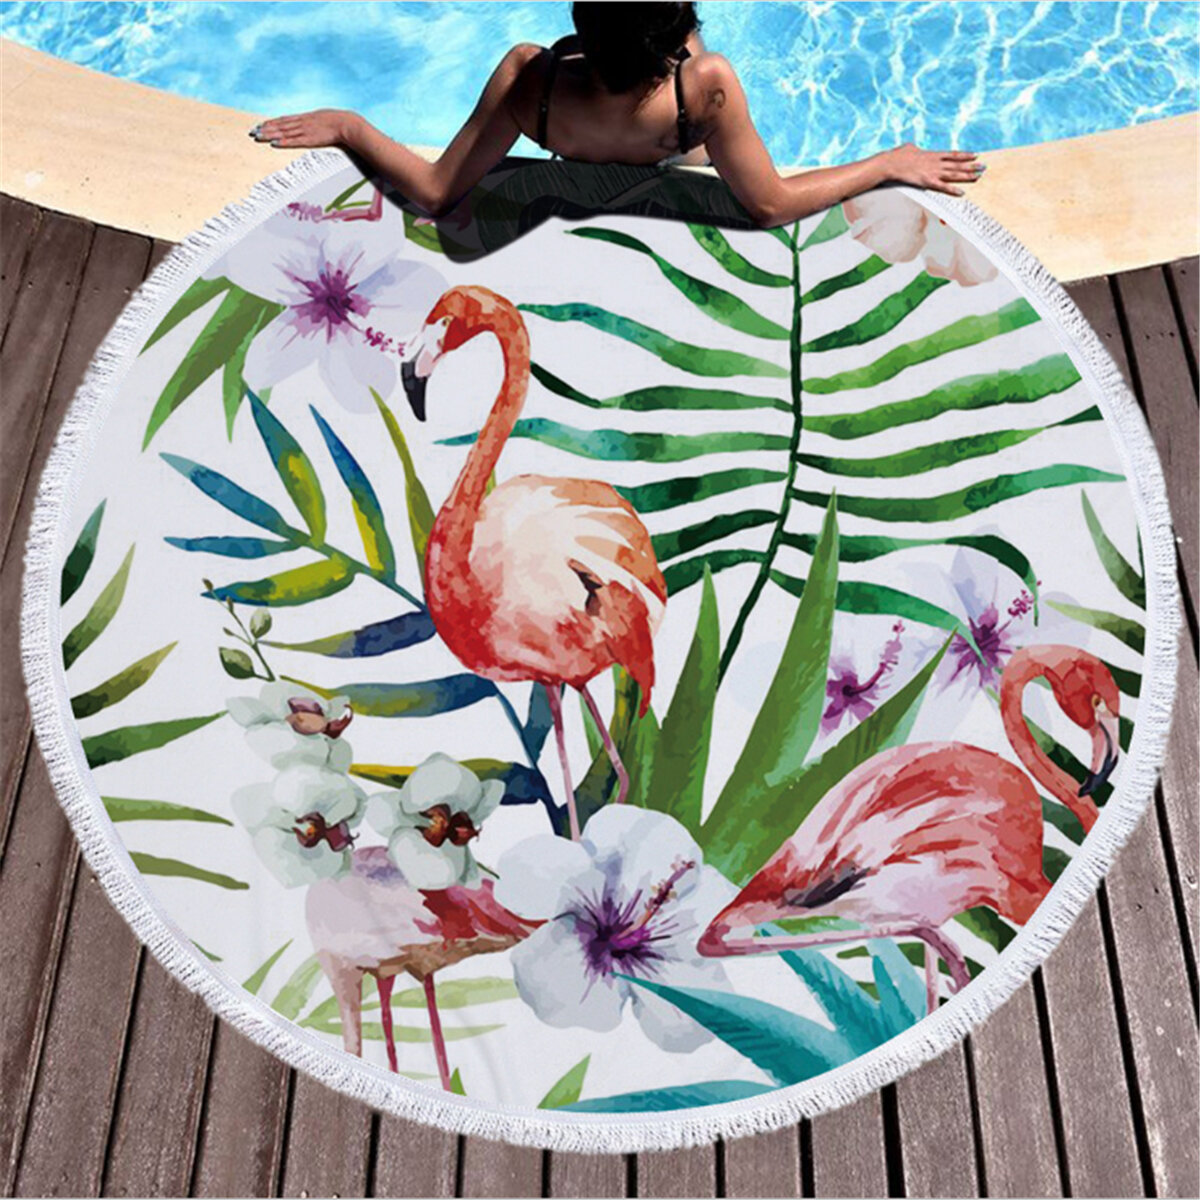 Honana WX-88 135x200cm Butterfly Bohemian Chiffon Beach Women Shawl Skirt Beach Mat Tapestry - 2